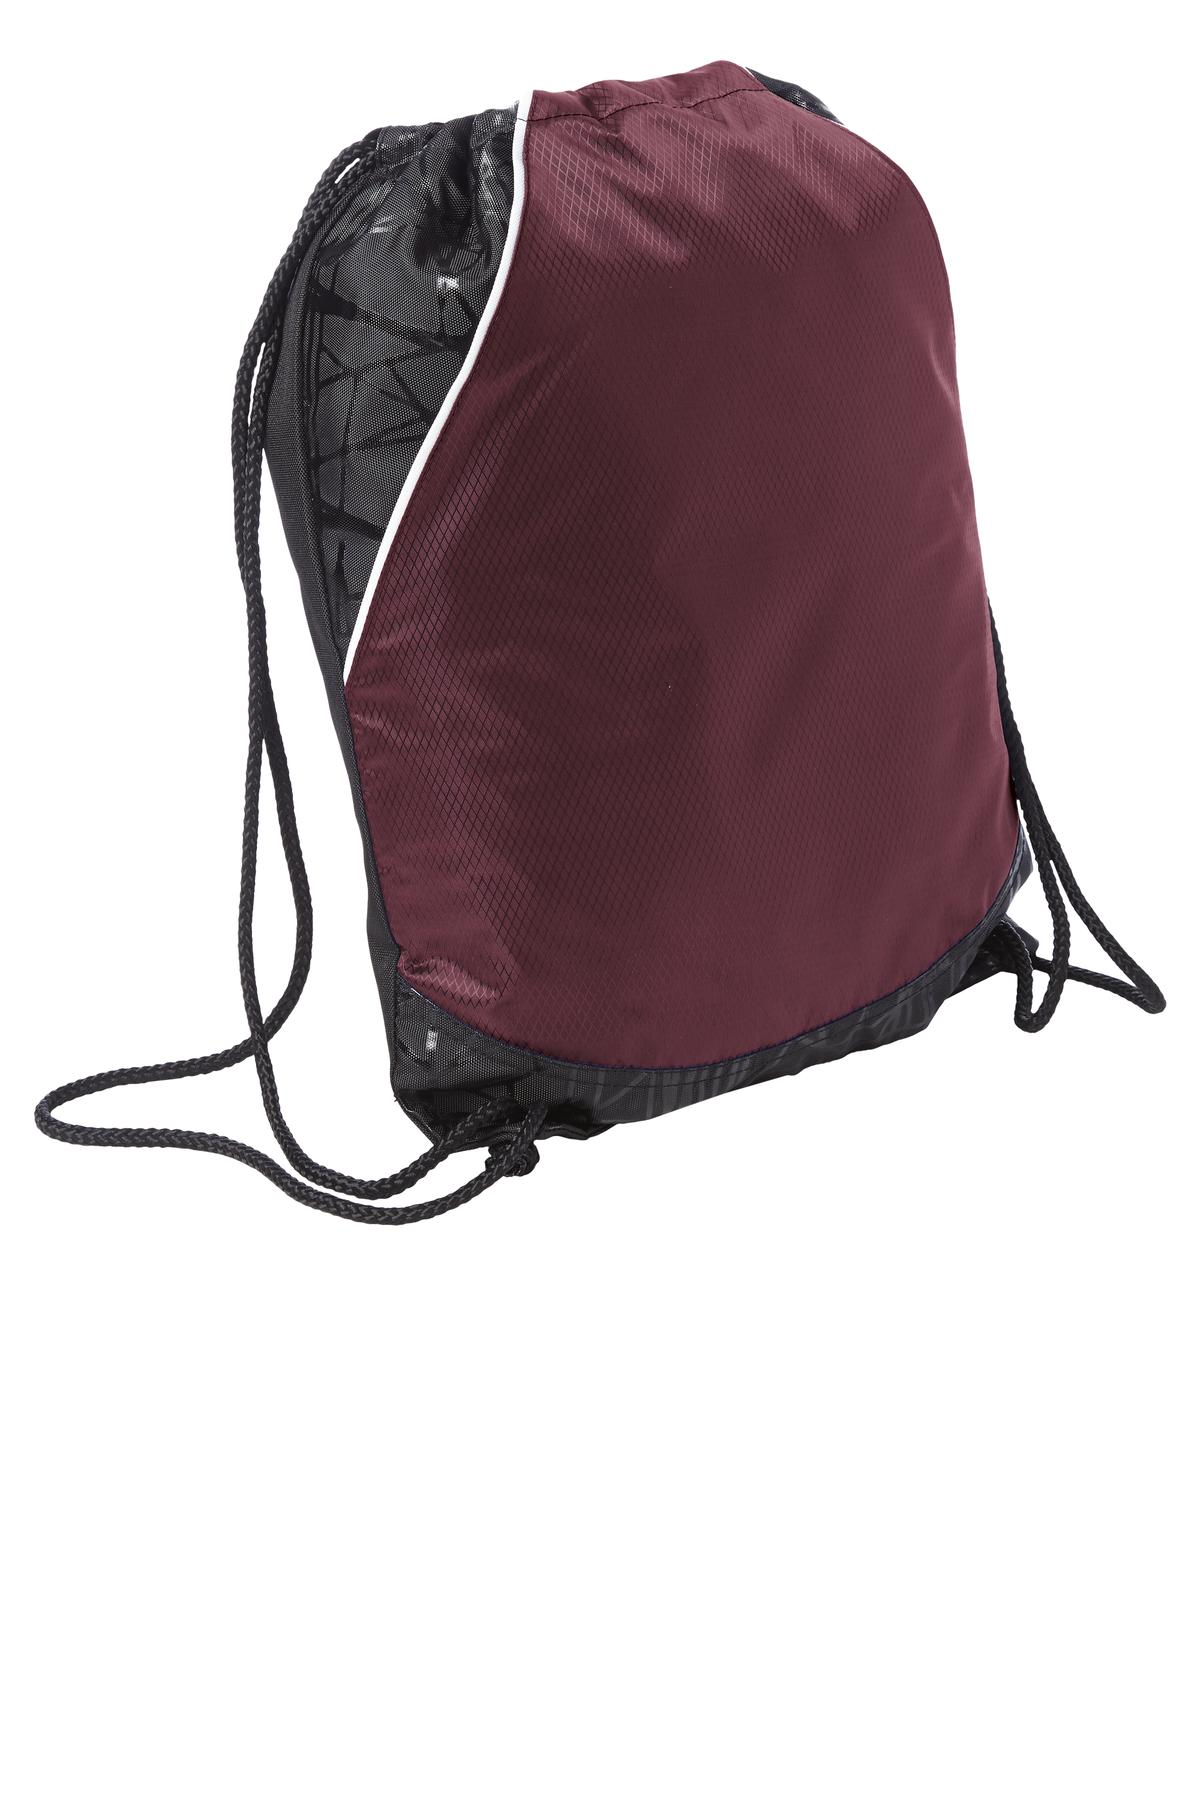 Sport-Tek ®  Rival Cinch Pack. BST600 - Maroon